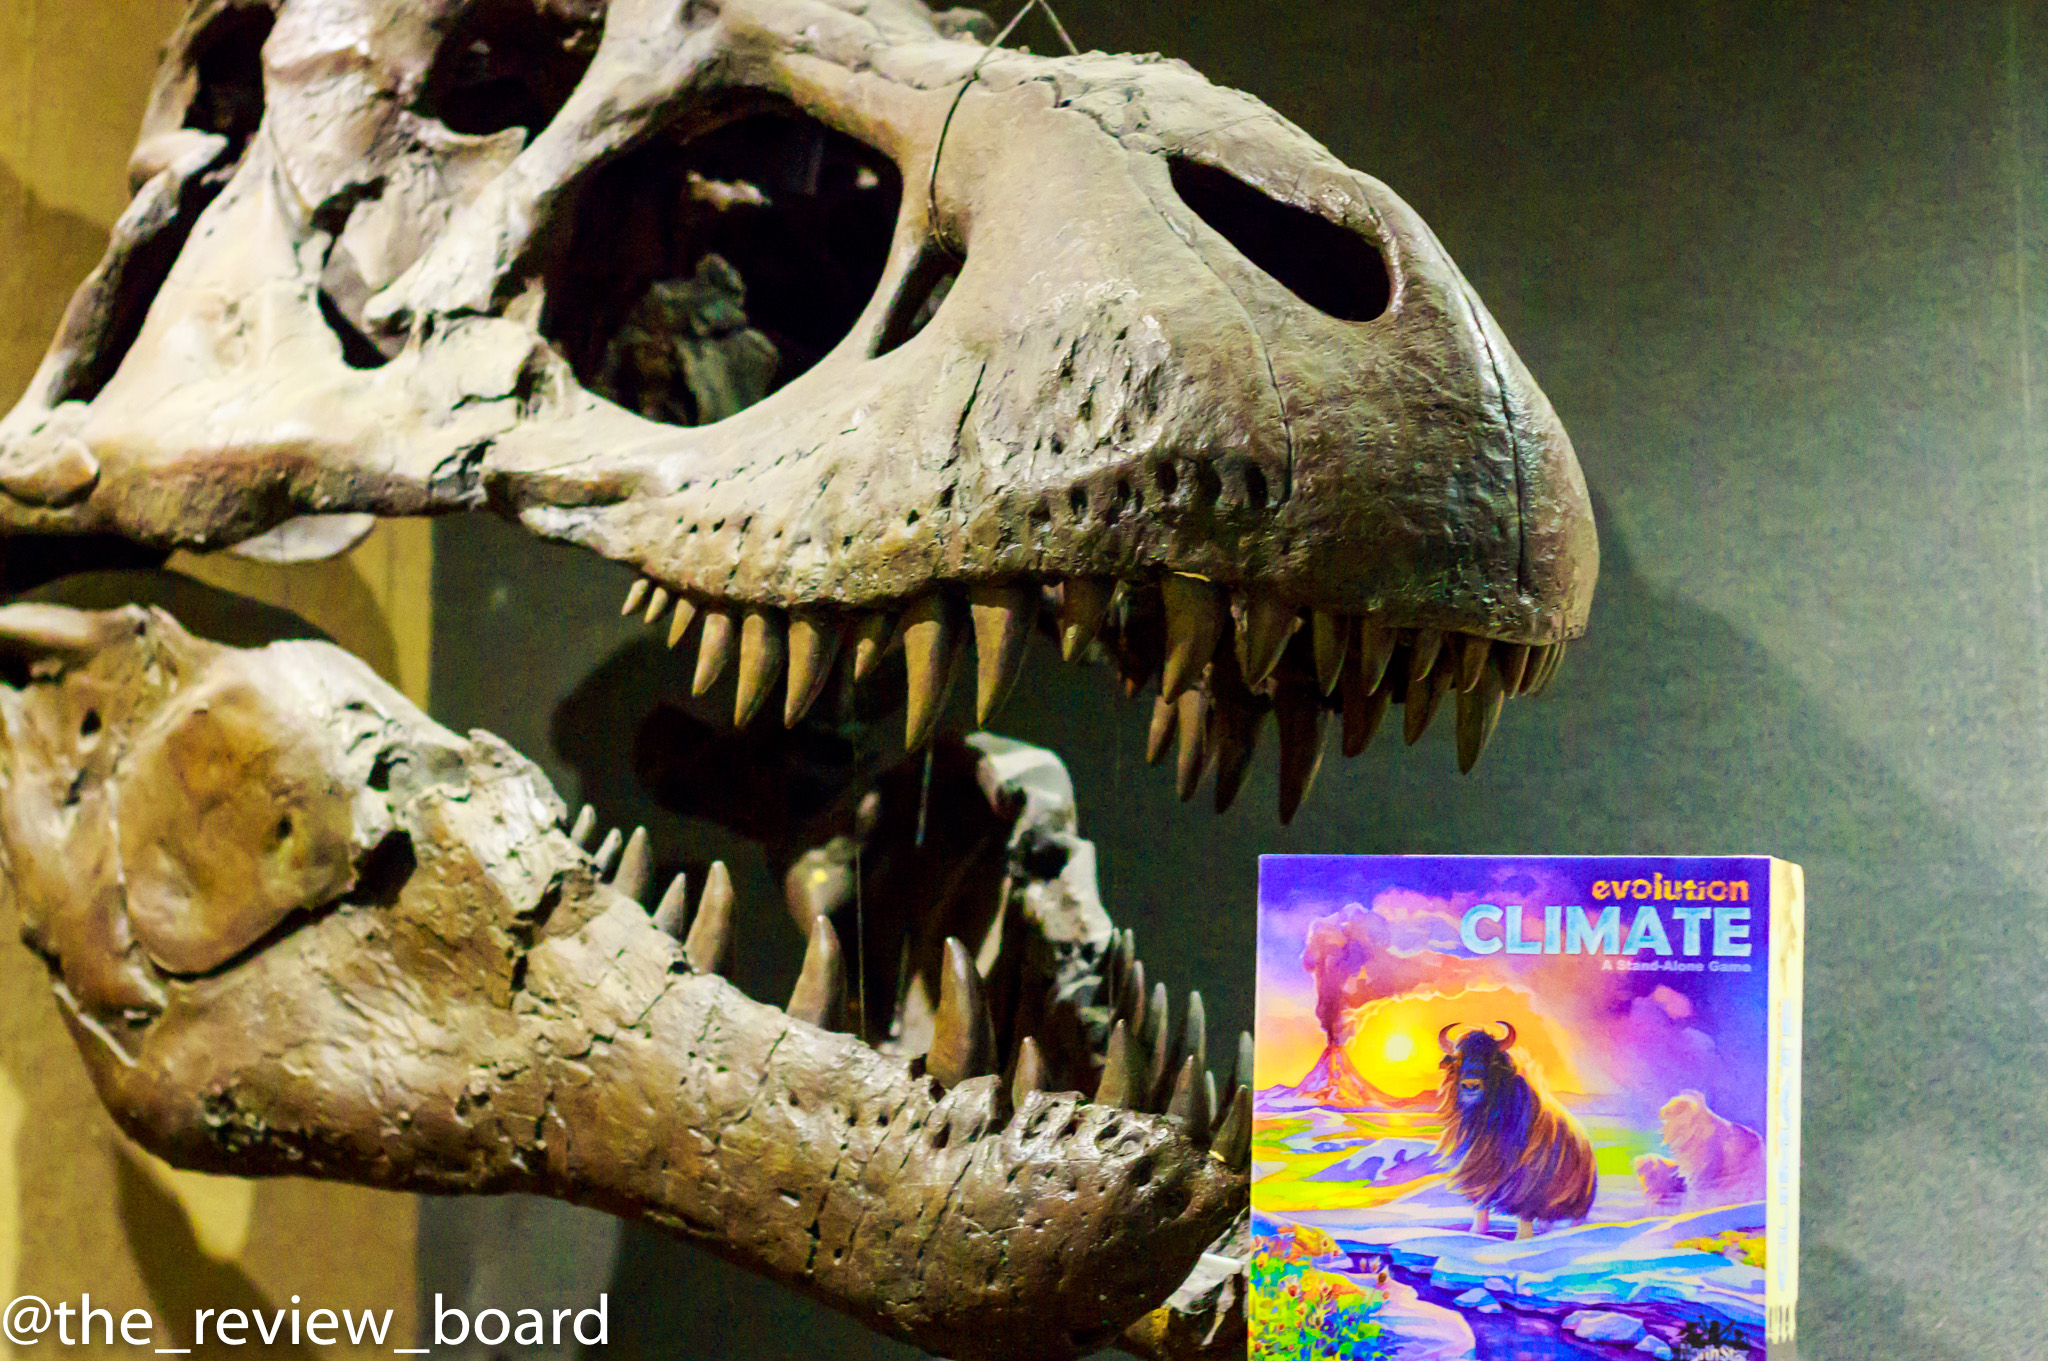 9 out of 10 Tyrannosauruses recommend Evolution. The other one is dead!